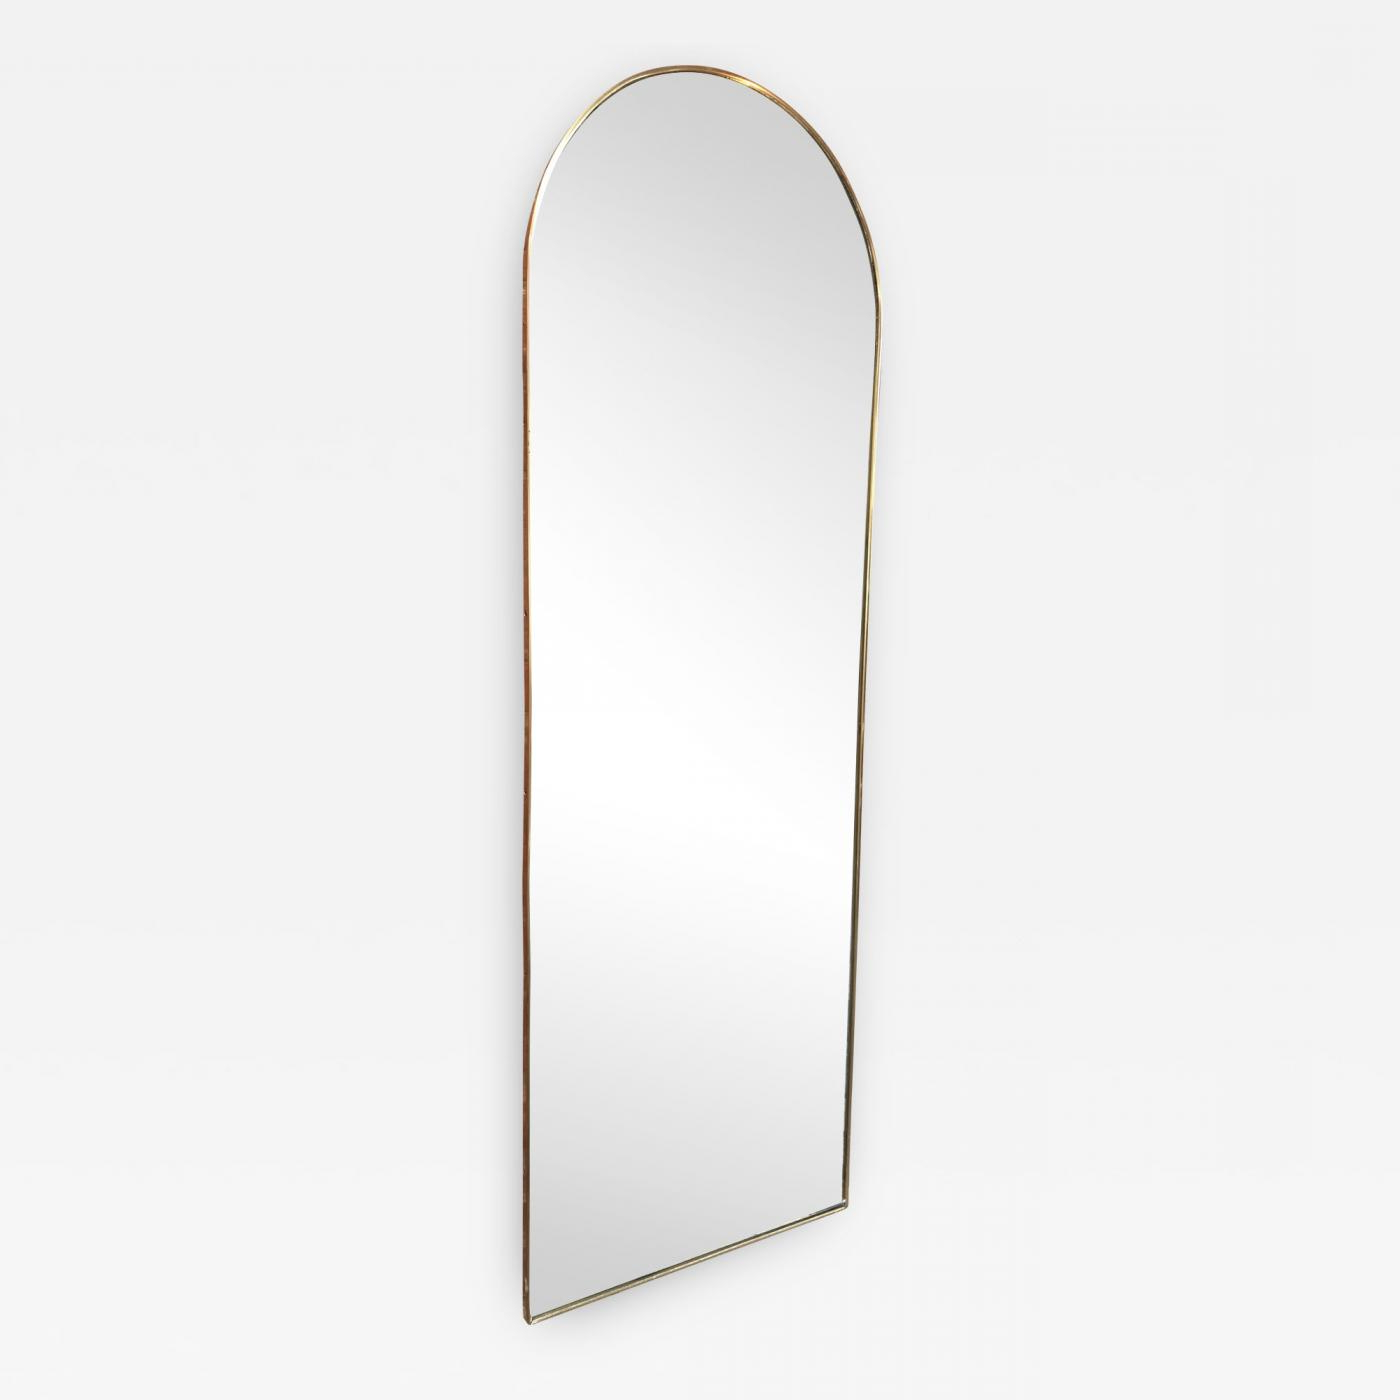 Italian Vintage Arched Shaped Brass Wall Mirror, 1950S In Most Current Arched Wall Mirrors (Gallery 18 of 20)